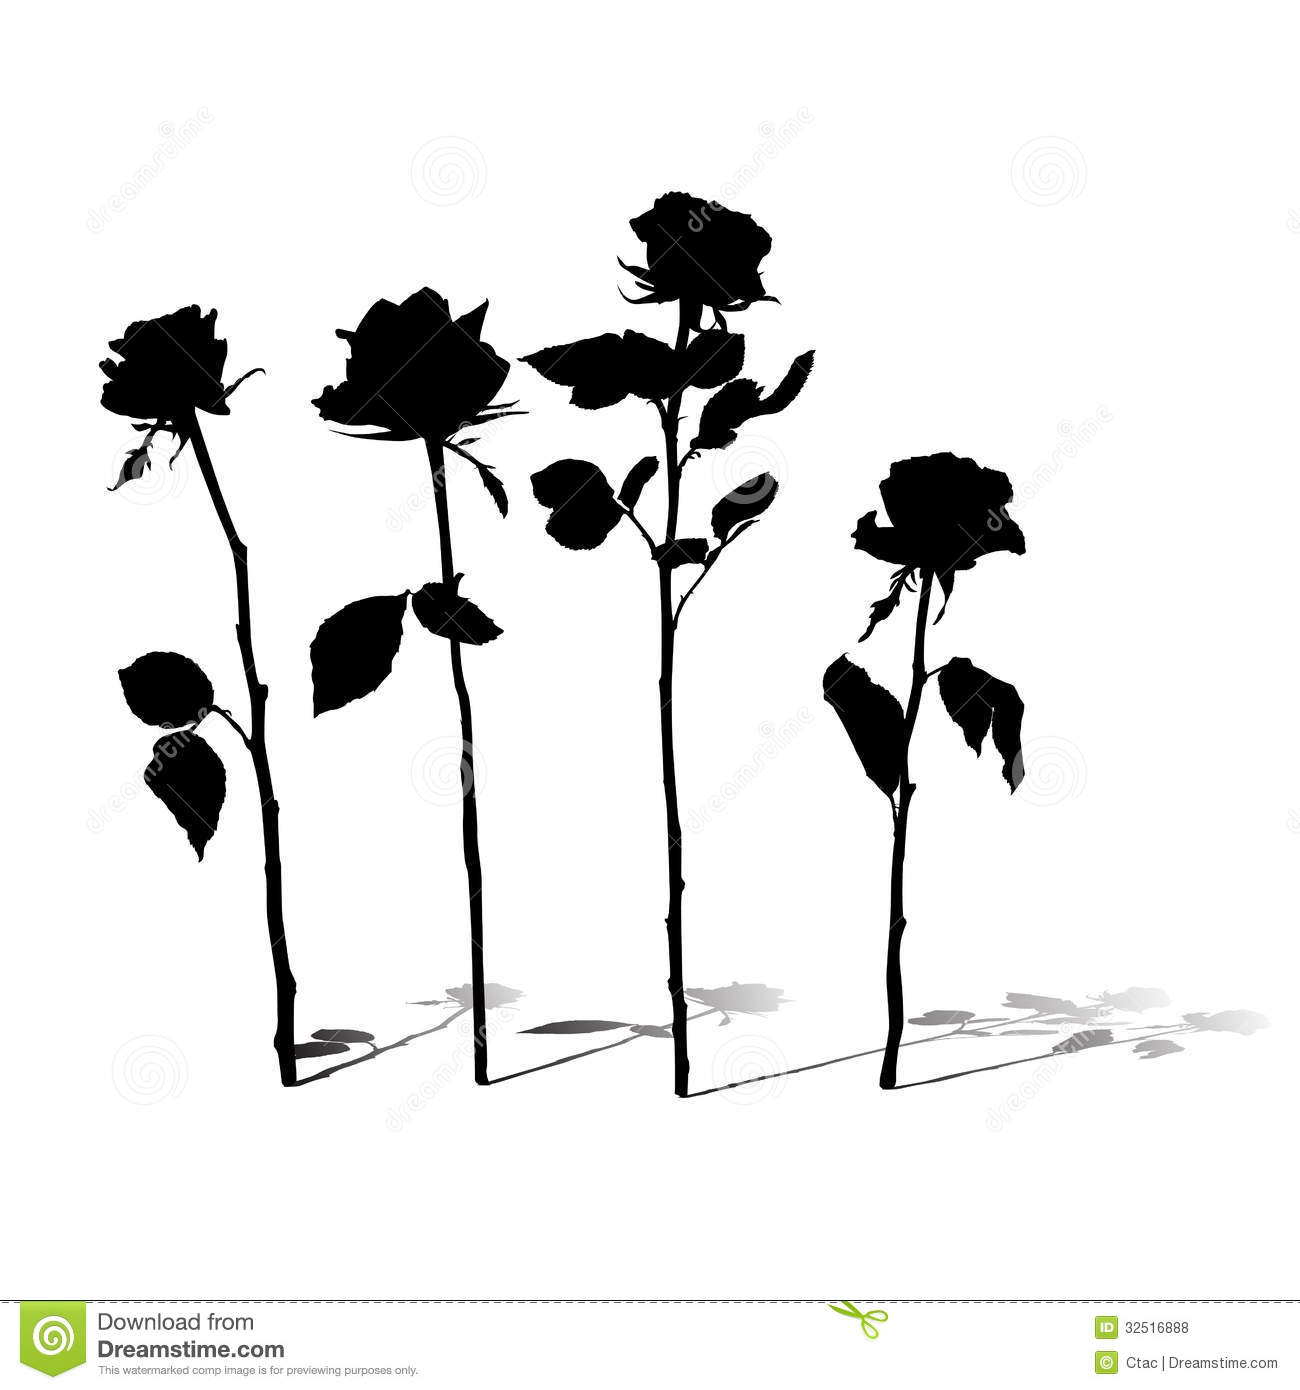 Spring Silhouettes And Shadows >> Roses silhouettes stock illustration. Image of abstract - 32516888